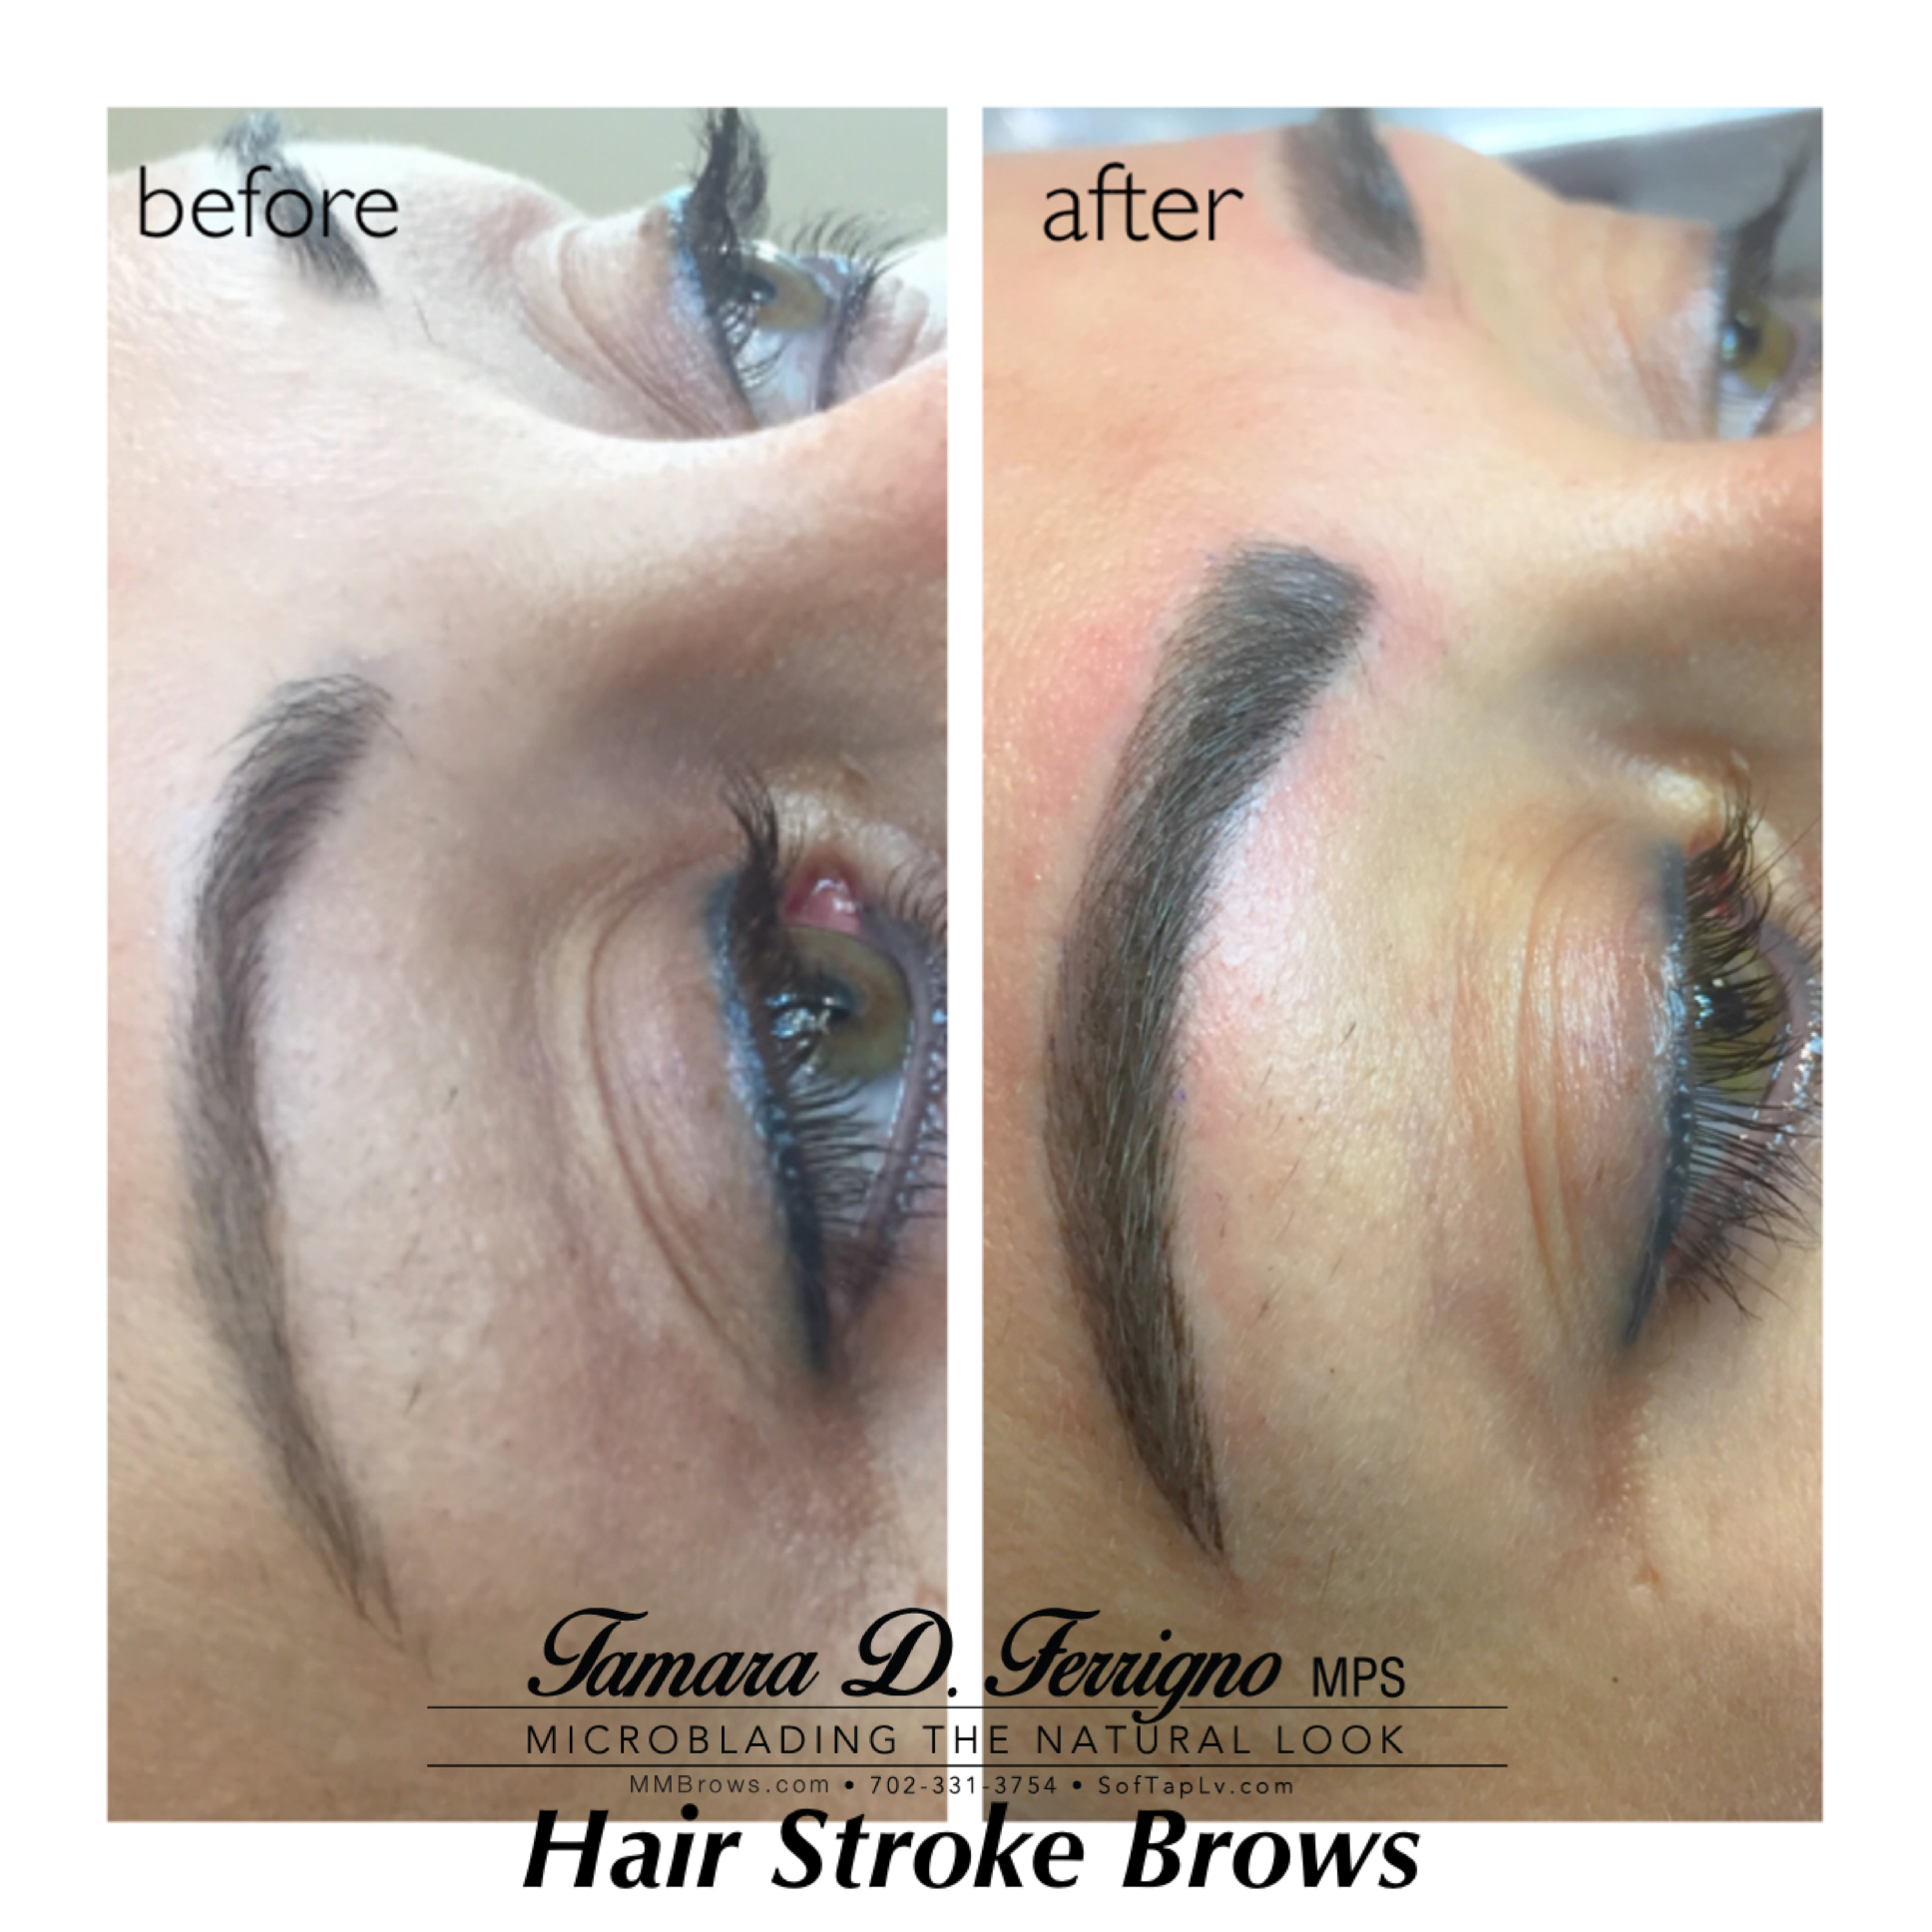 Softap Permenant Makeup And Microblading During Pregnancy And